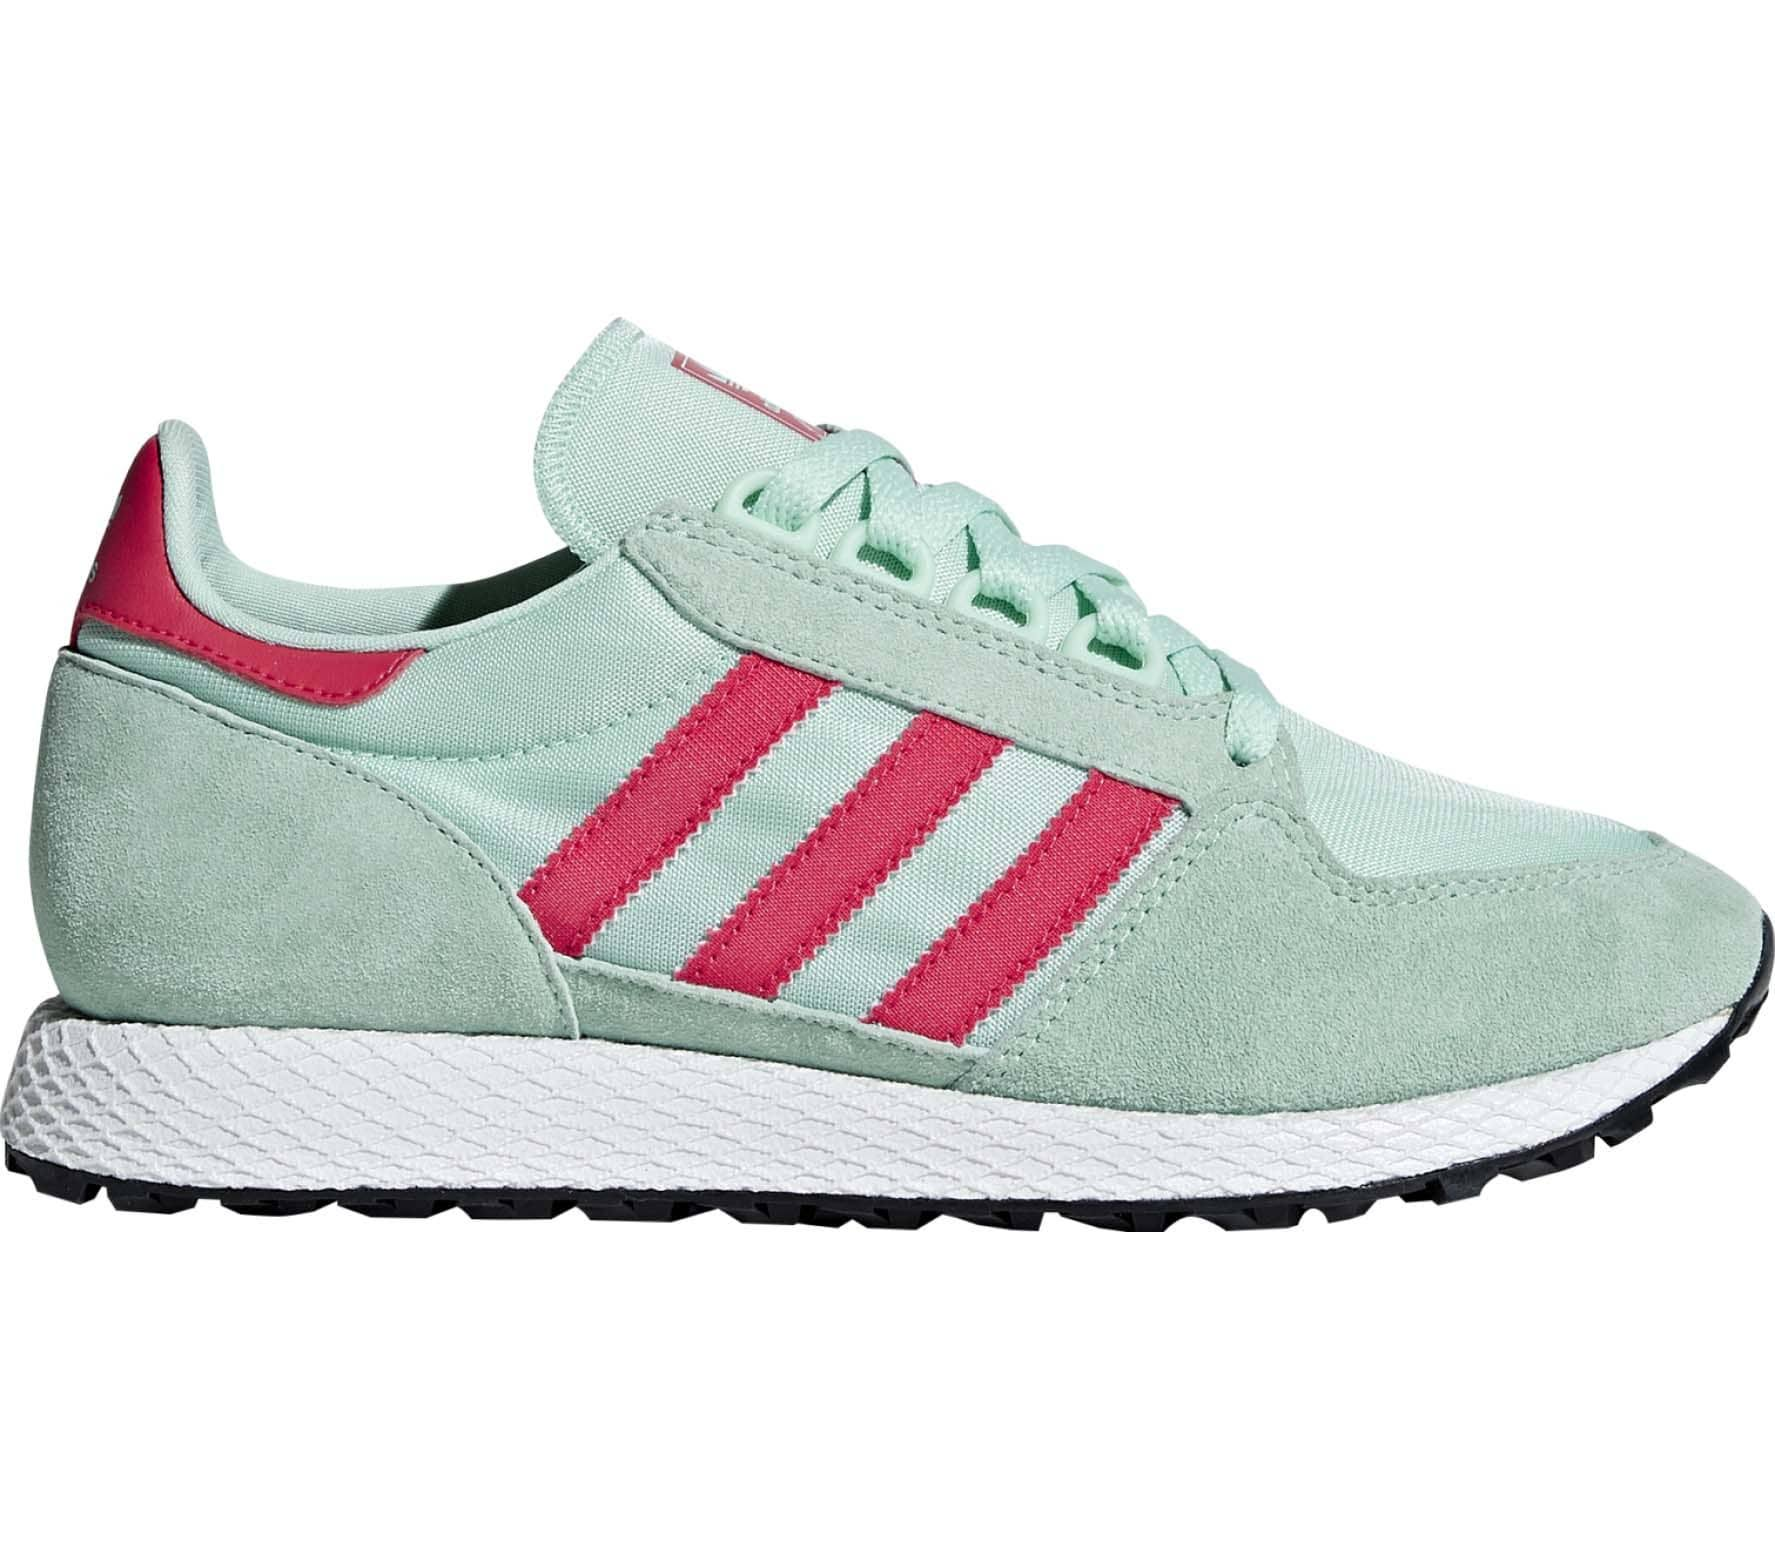 Sneaker Cwhite Grove' Adidas CleminActpnk 'forest nPNOXwk80